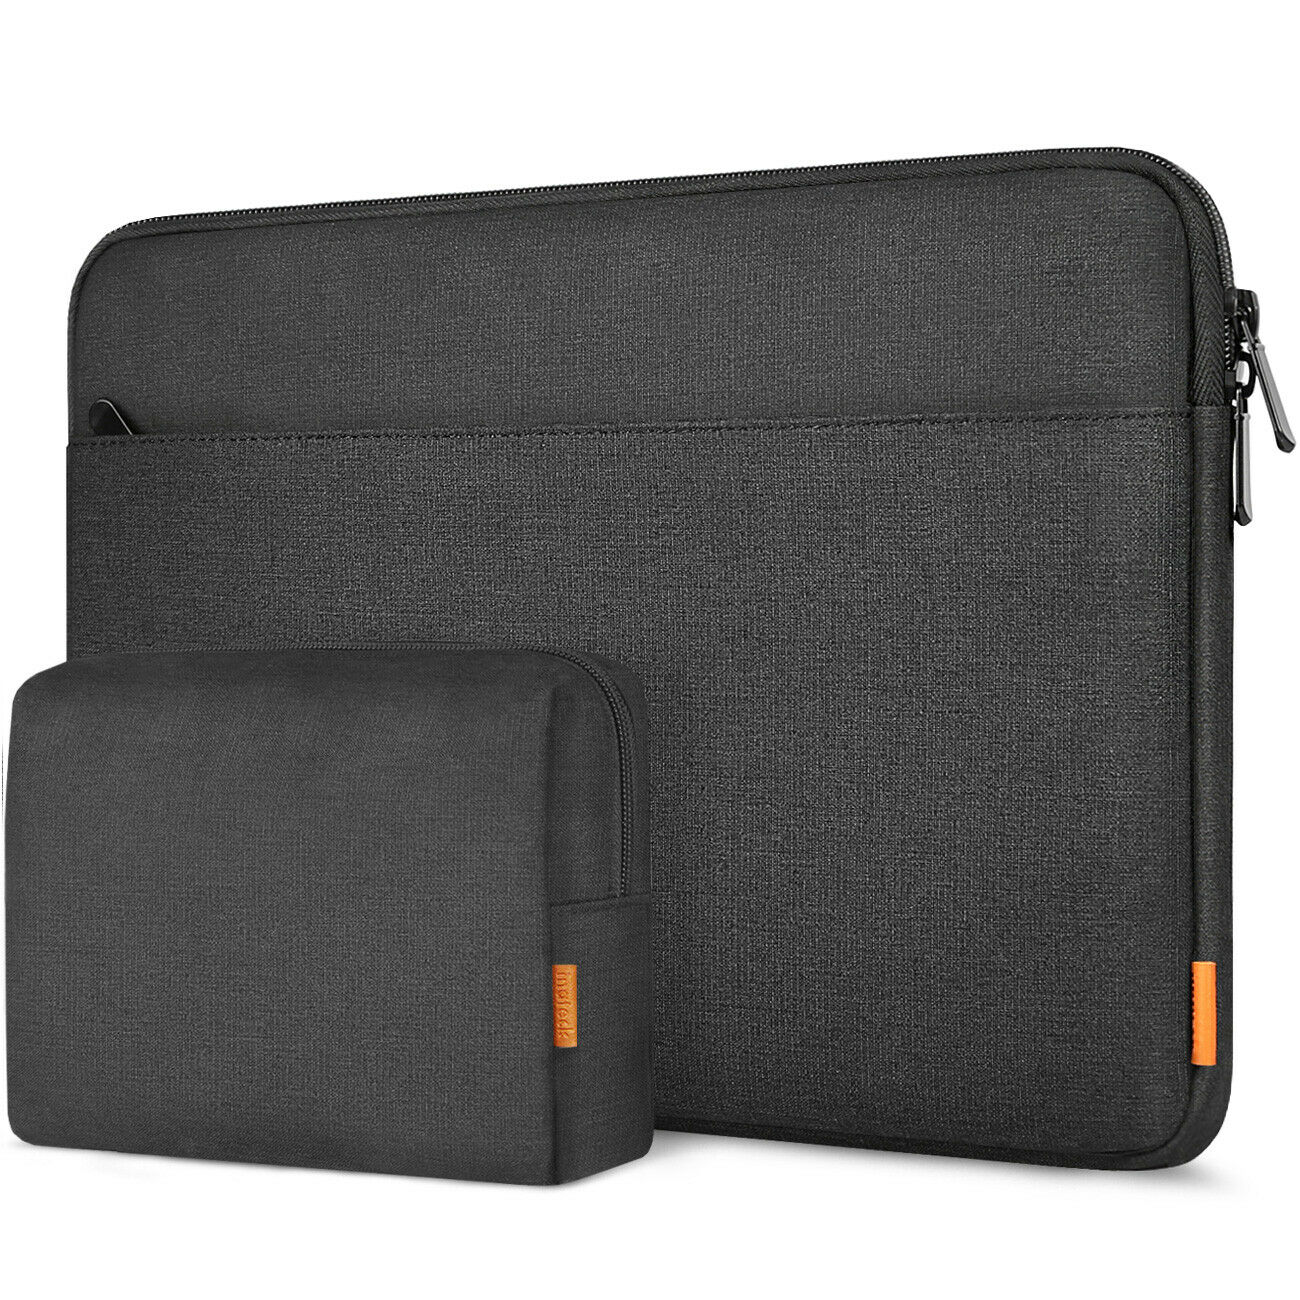 Inateck 15-15.6 Inch Laptop Sleeve Case Bag with Accessory P